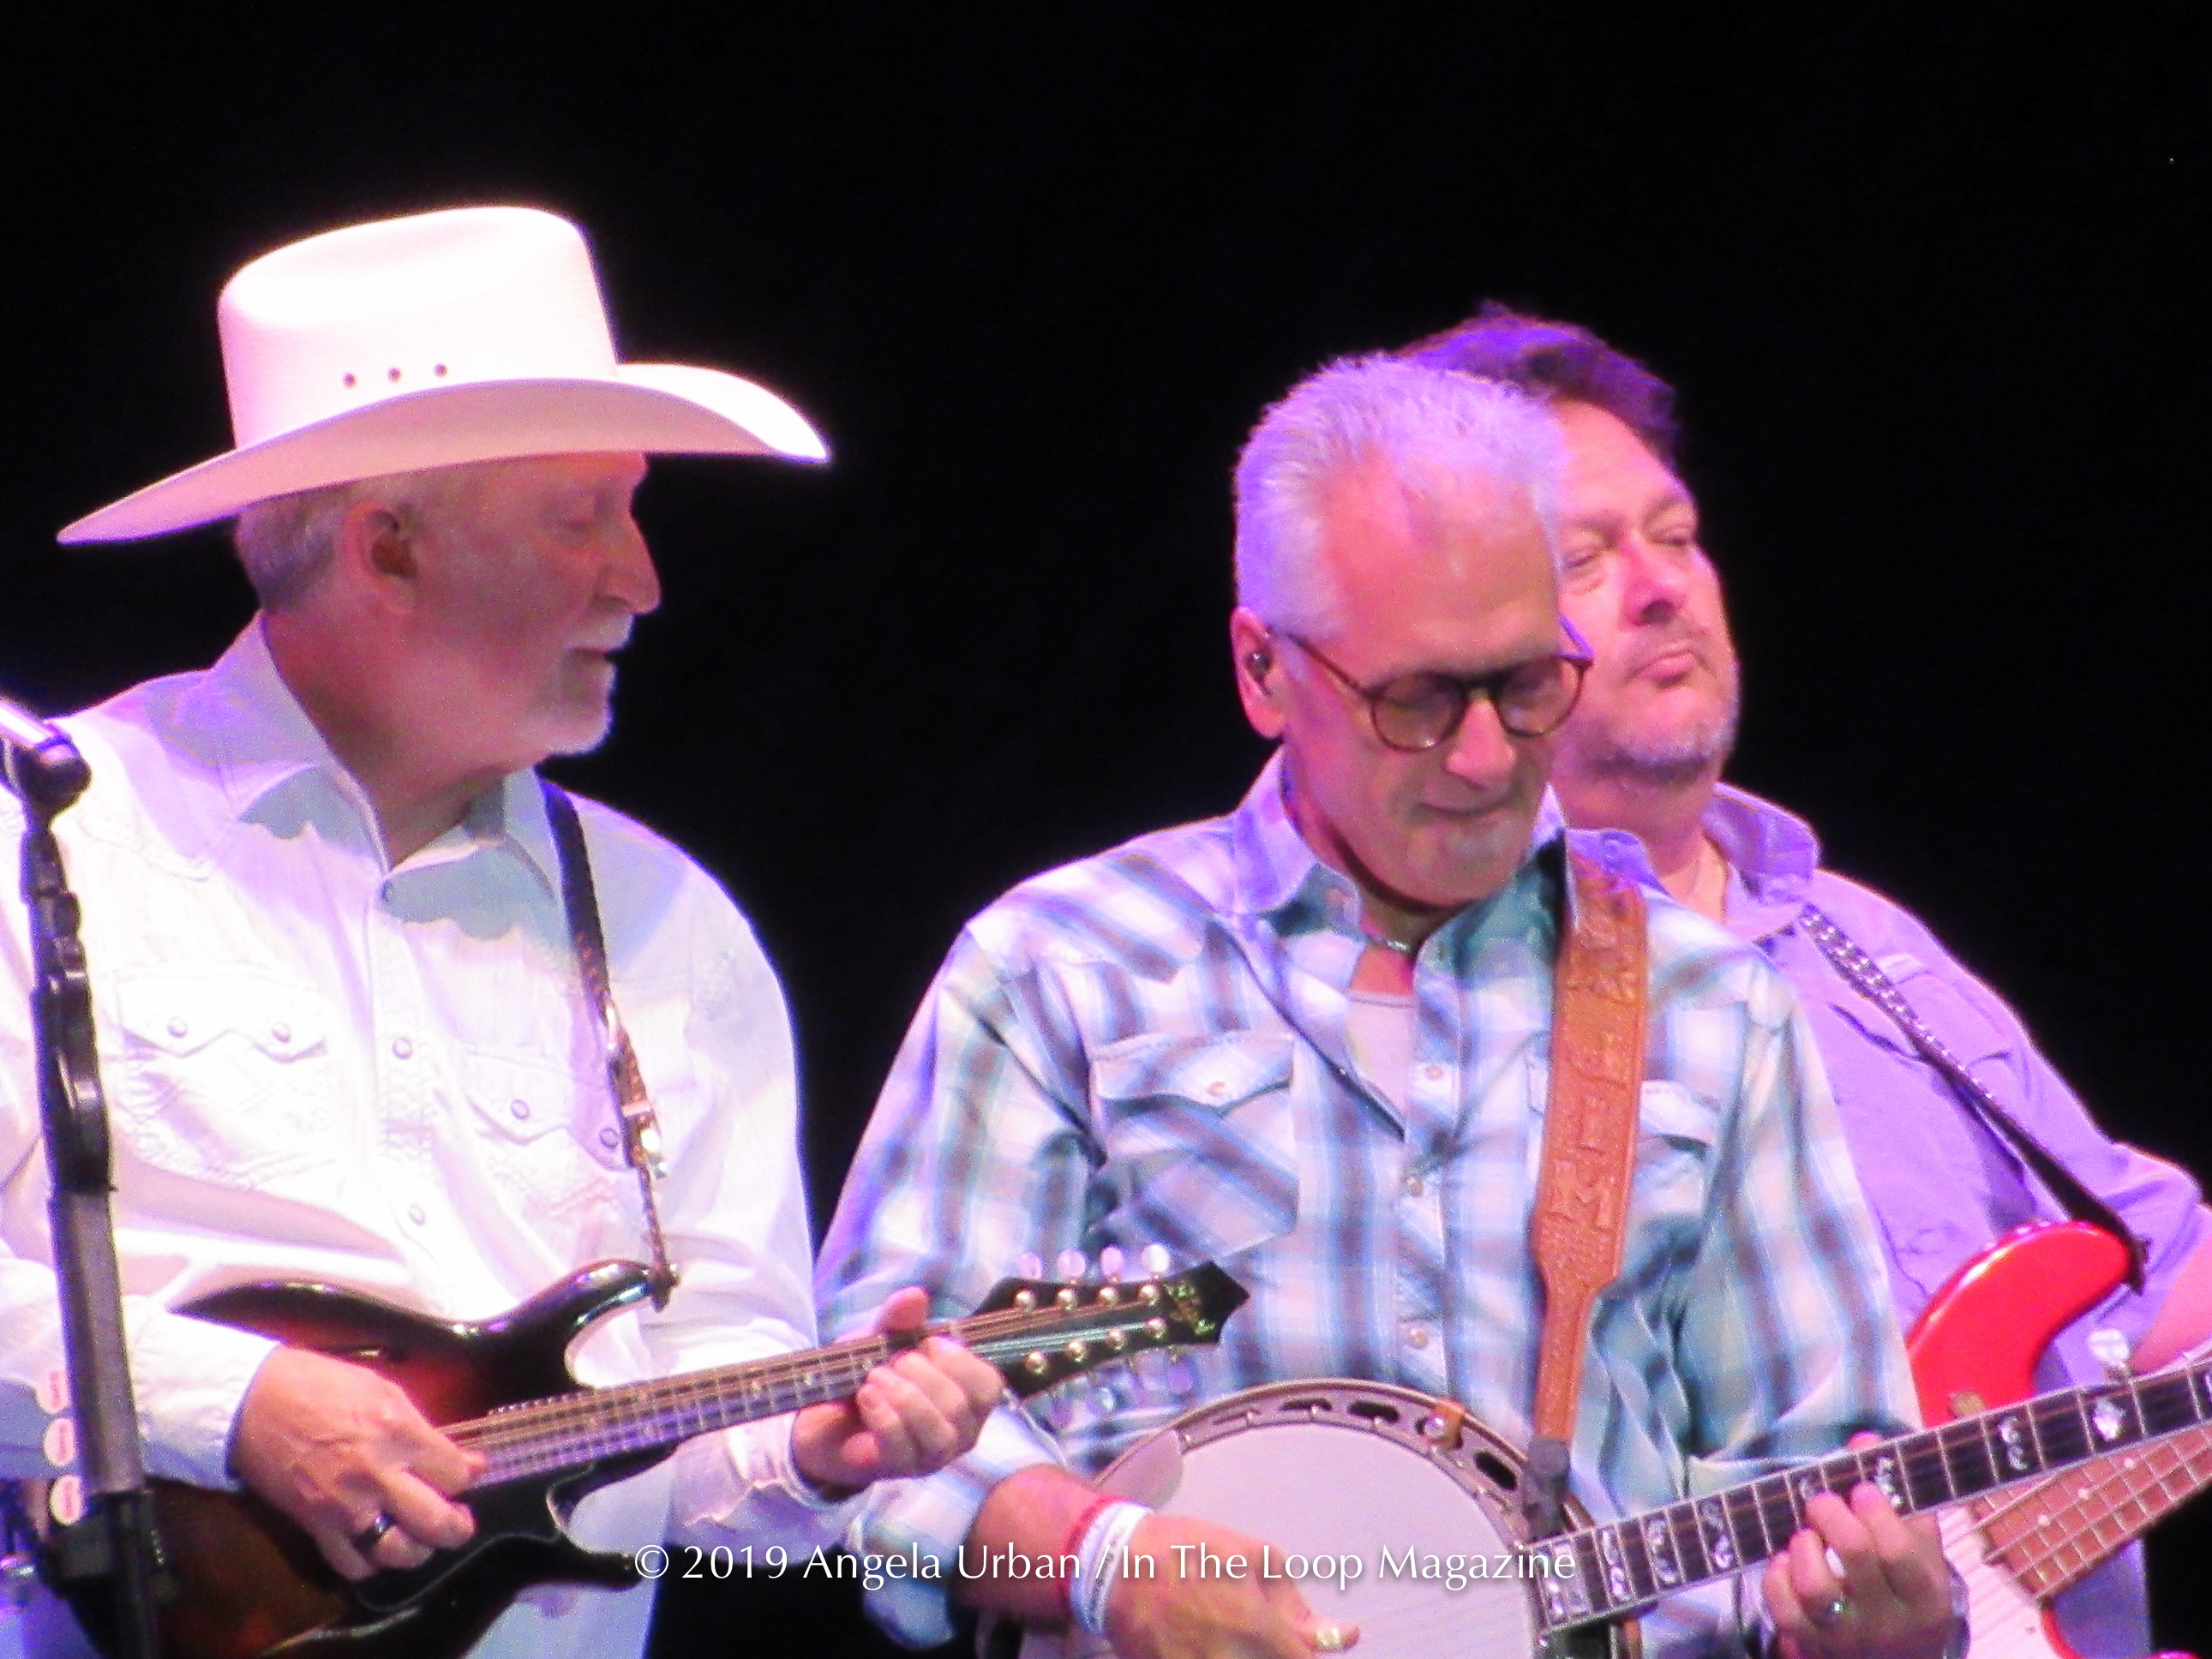 ITLM OTRS Presents: Country Day Featuring Diamond Rio and Sawyer Brown @ 138th Porter County Fair